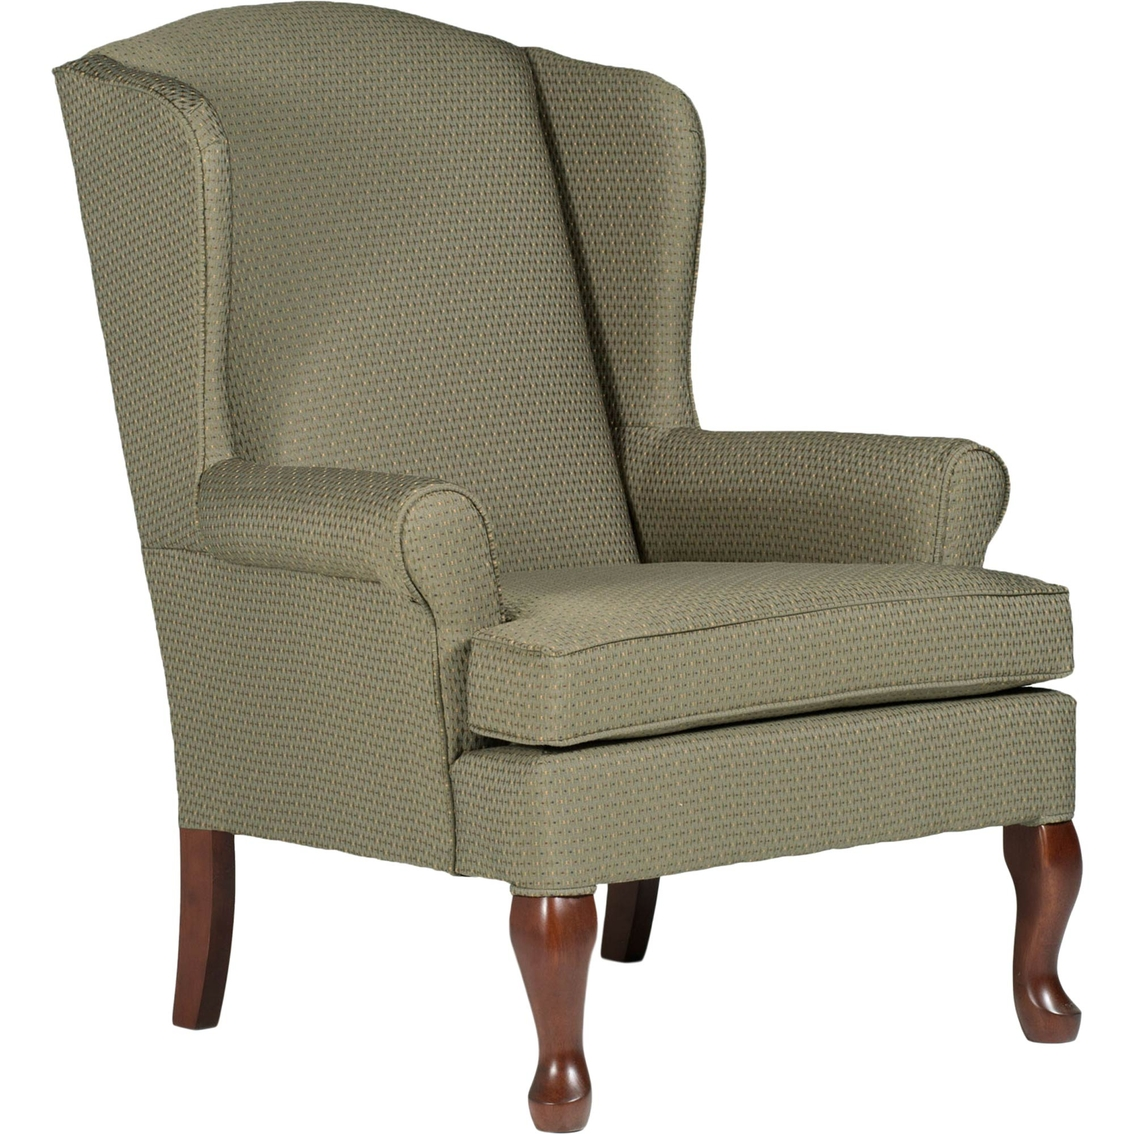 Best home furnishings doris wing chair furniture for Hometown furniture exchange